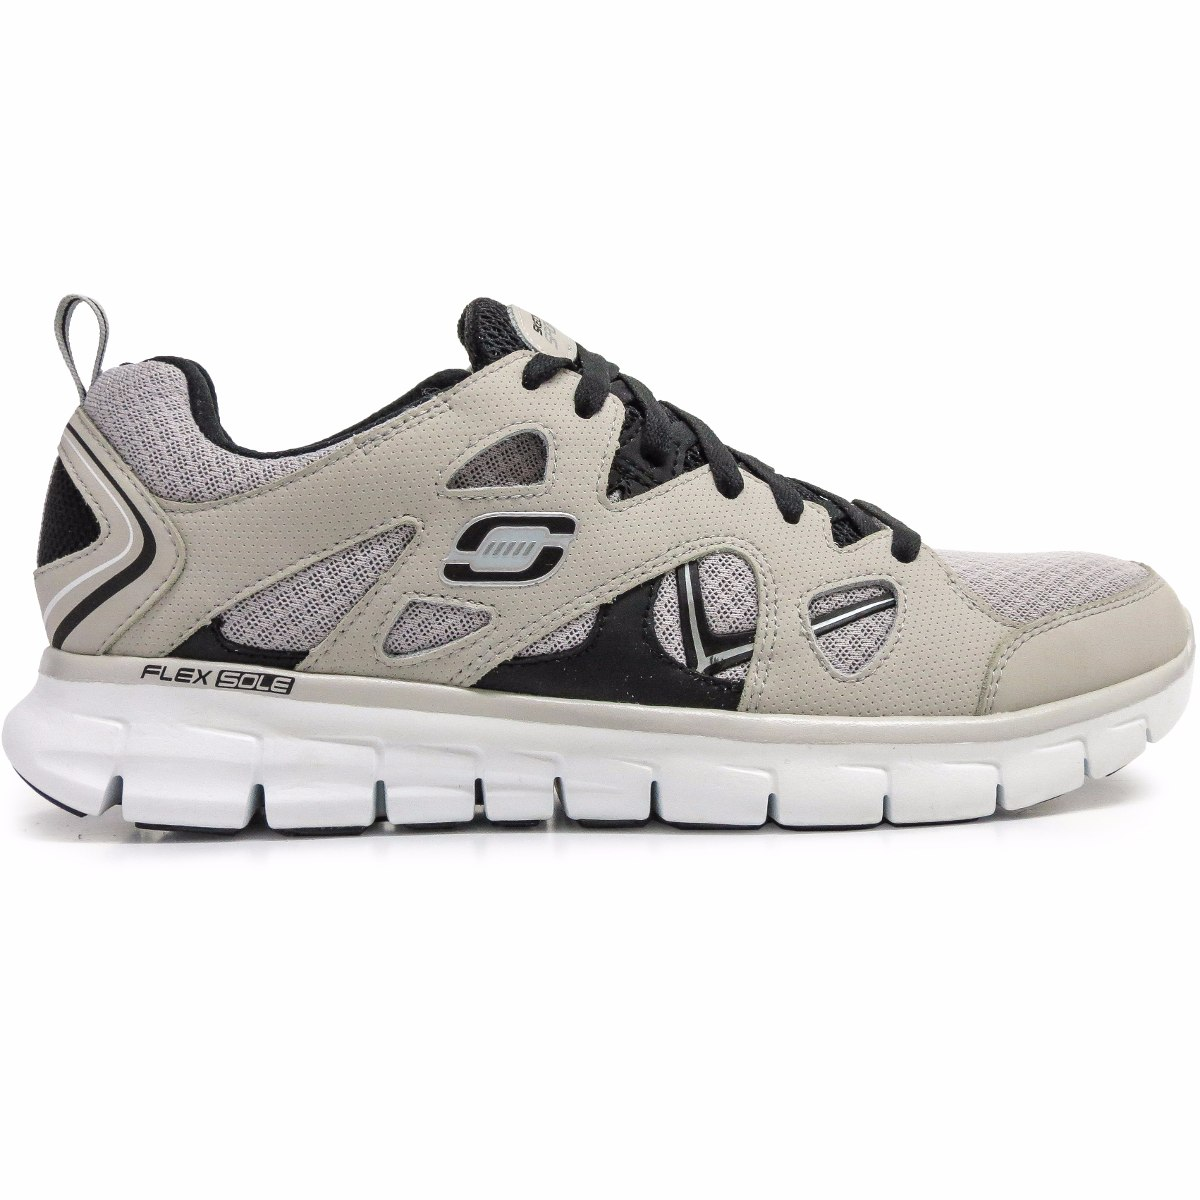 Muni Depot Zapatillas Skechers Synergy Gridiron Flex Sole Running Hombr